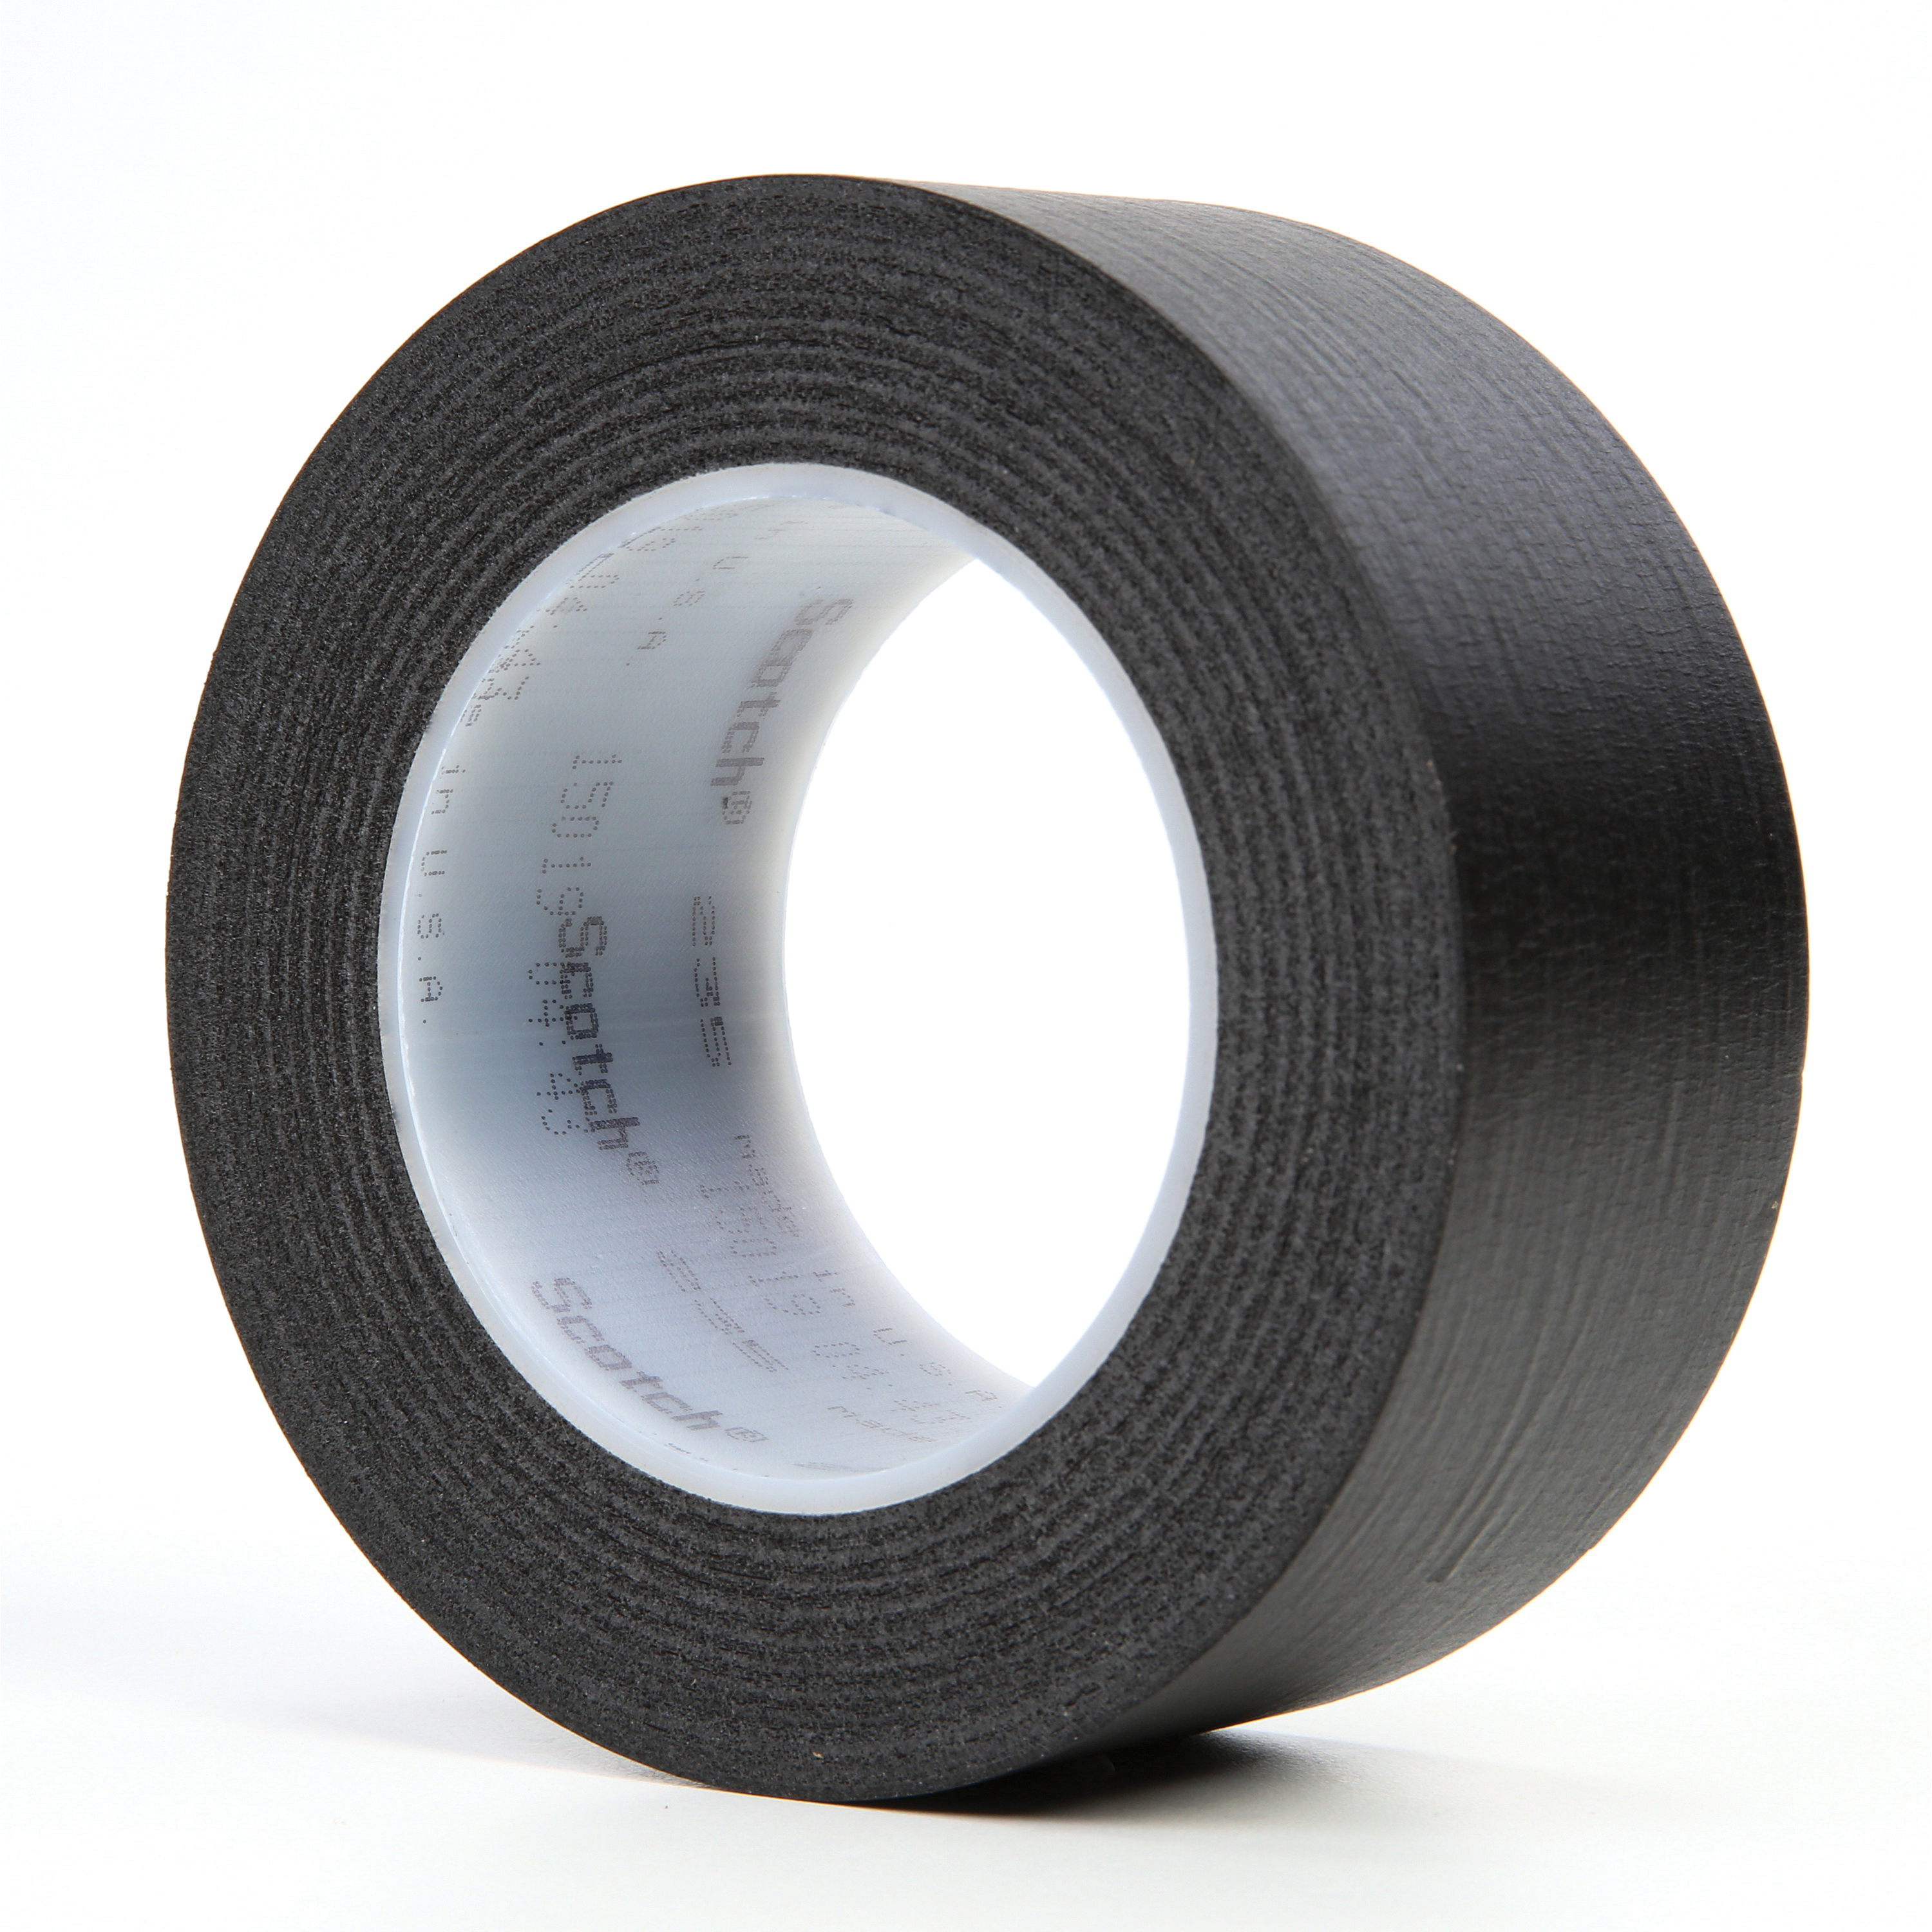 3M™ 021200-04246 Photographic Tape, 60 yd L x 2 in W, 7 mil THK, Rubber Adhesive, Crepe Paper Backing, Black